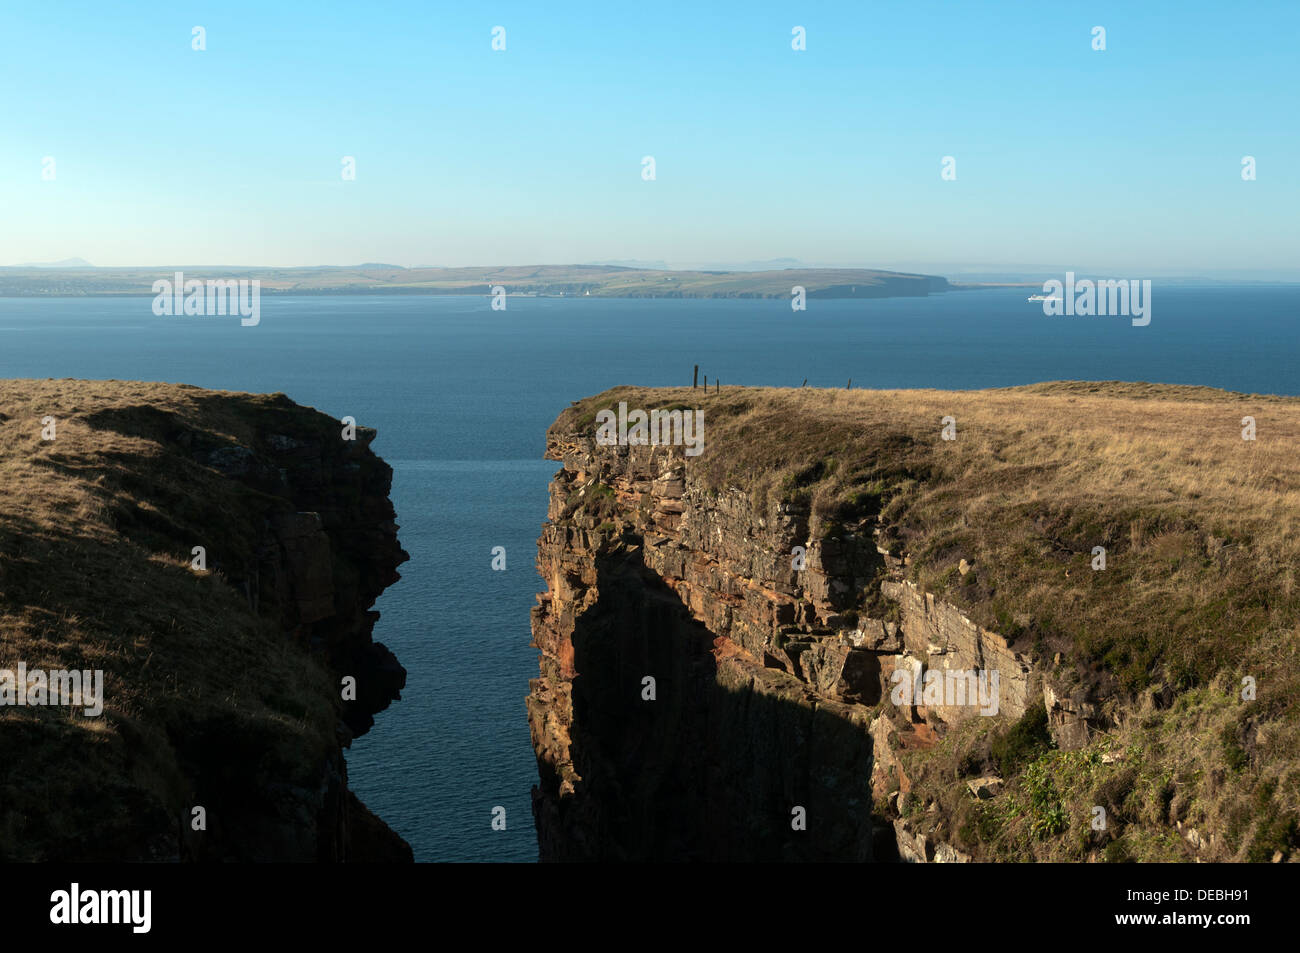 A geo (rock cleft) on Dunnet Head, near Thurso, Caithness, Scotland, UK. Holborn Head near Scrabster in the distance. - Stock Image